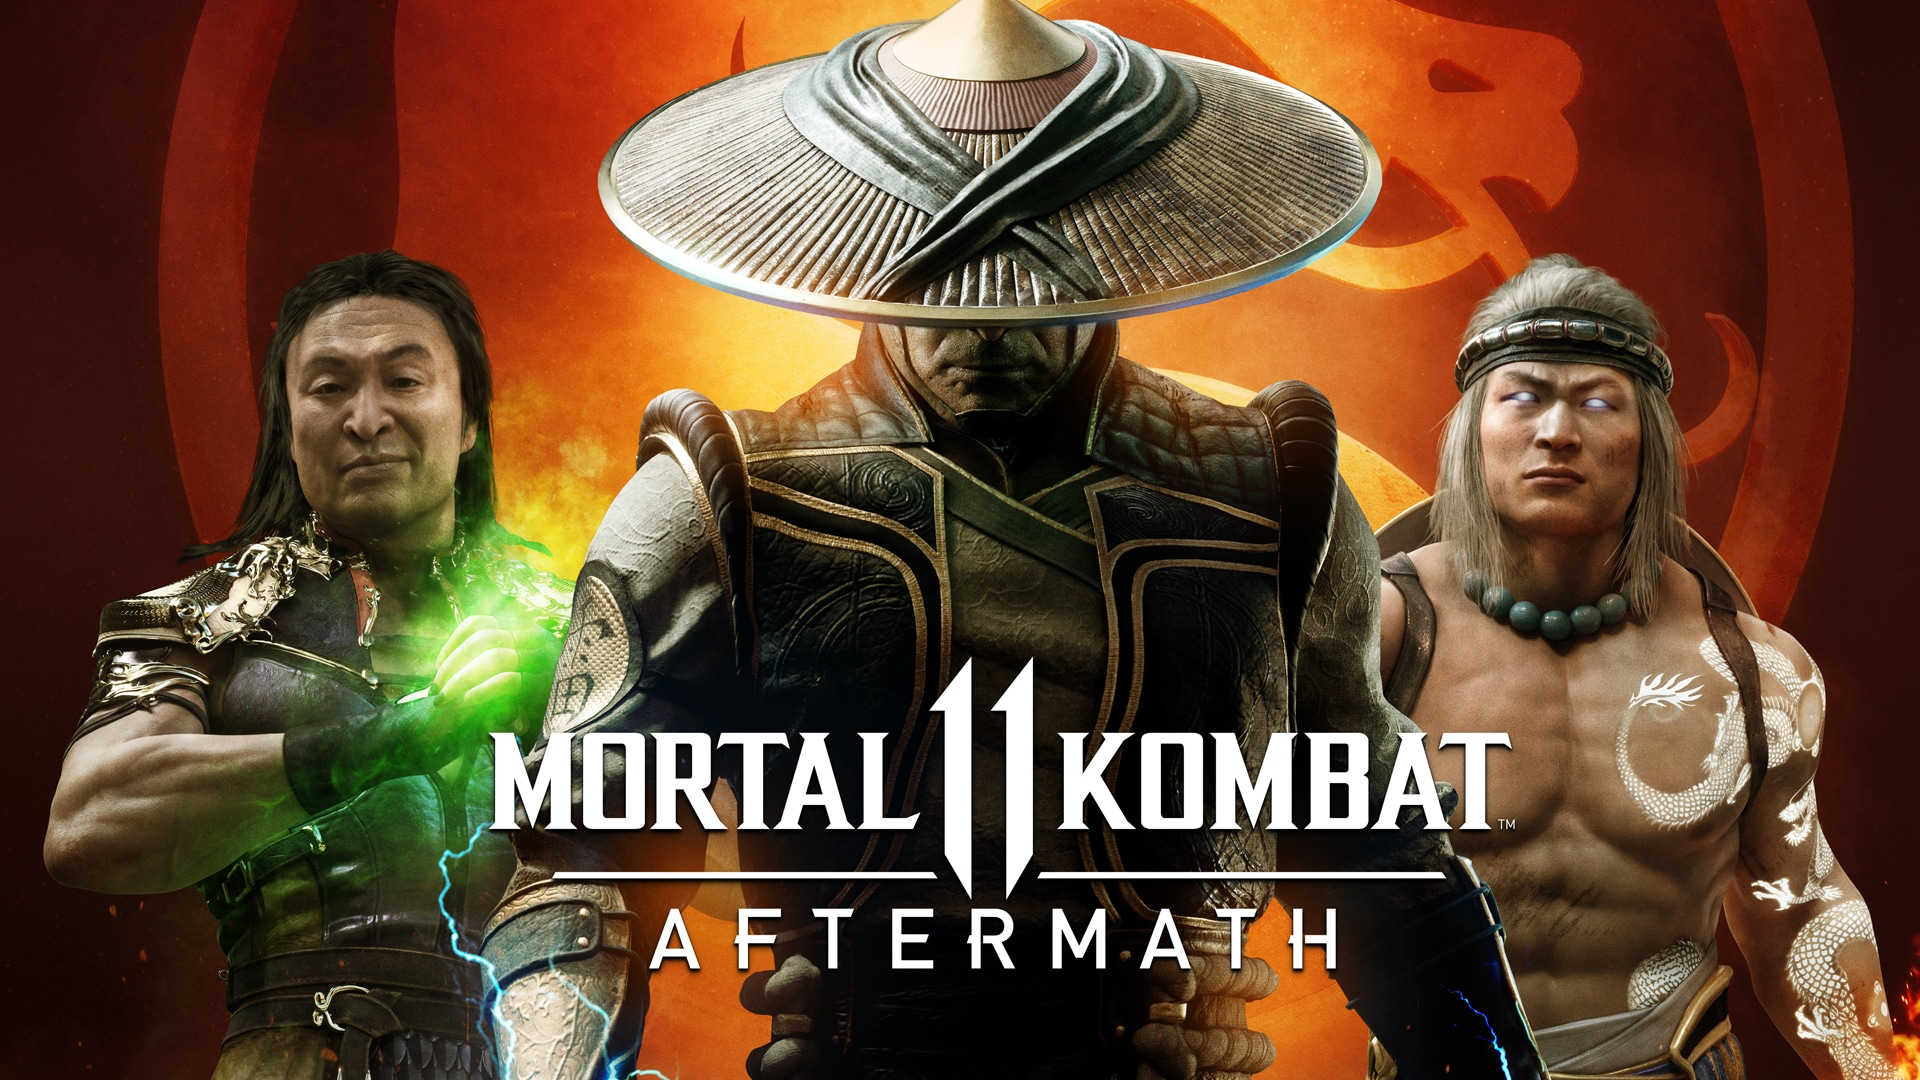 Mortal Kombat 11 Aftermath + Kombat Pack Bundle DLC